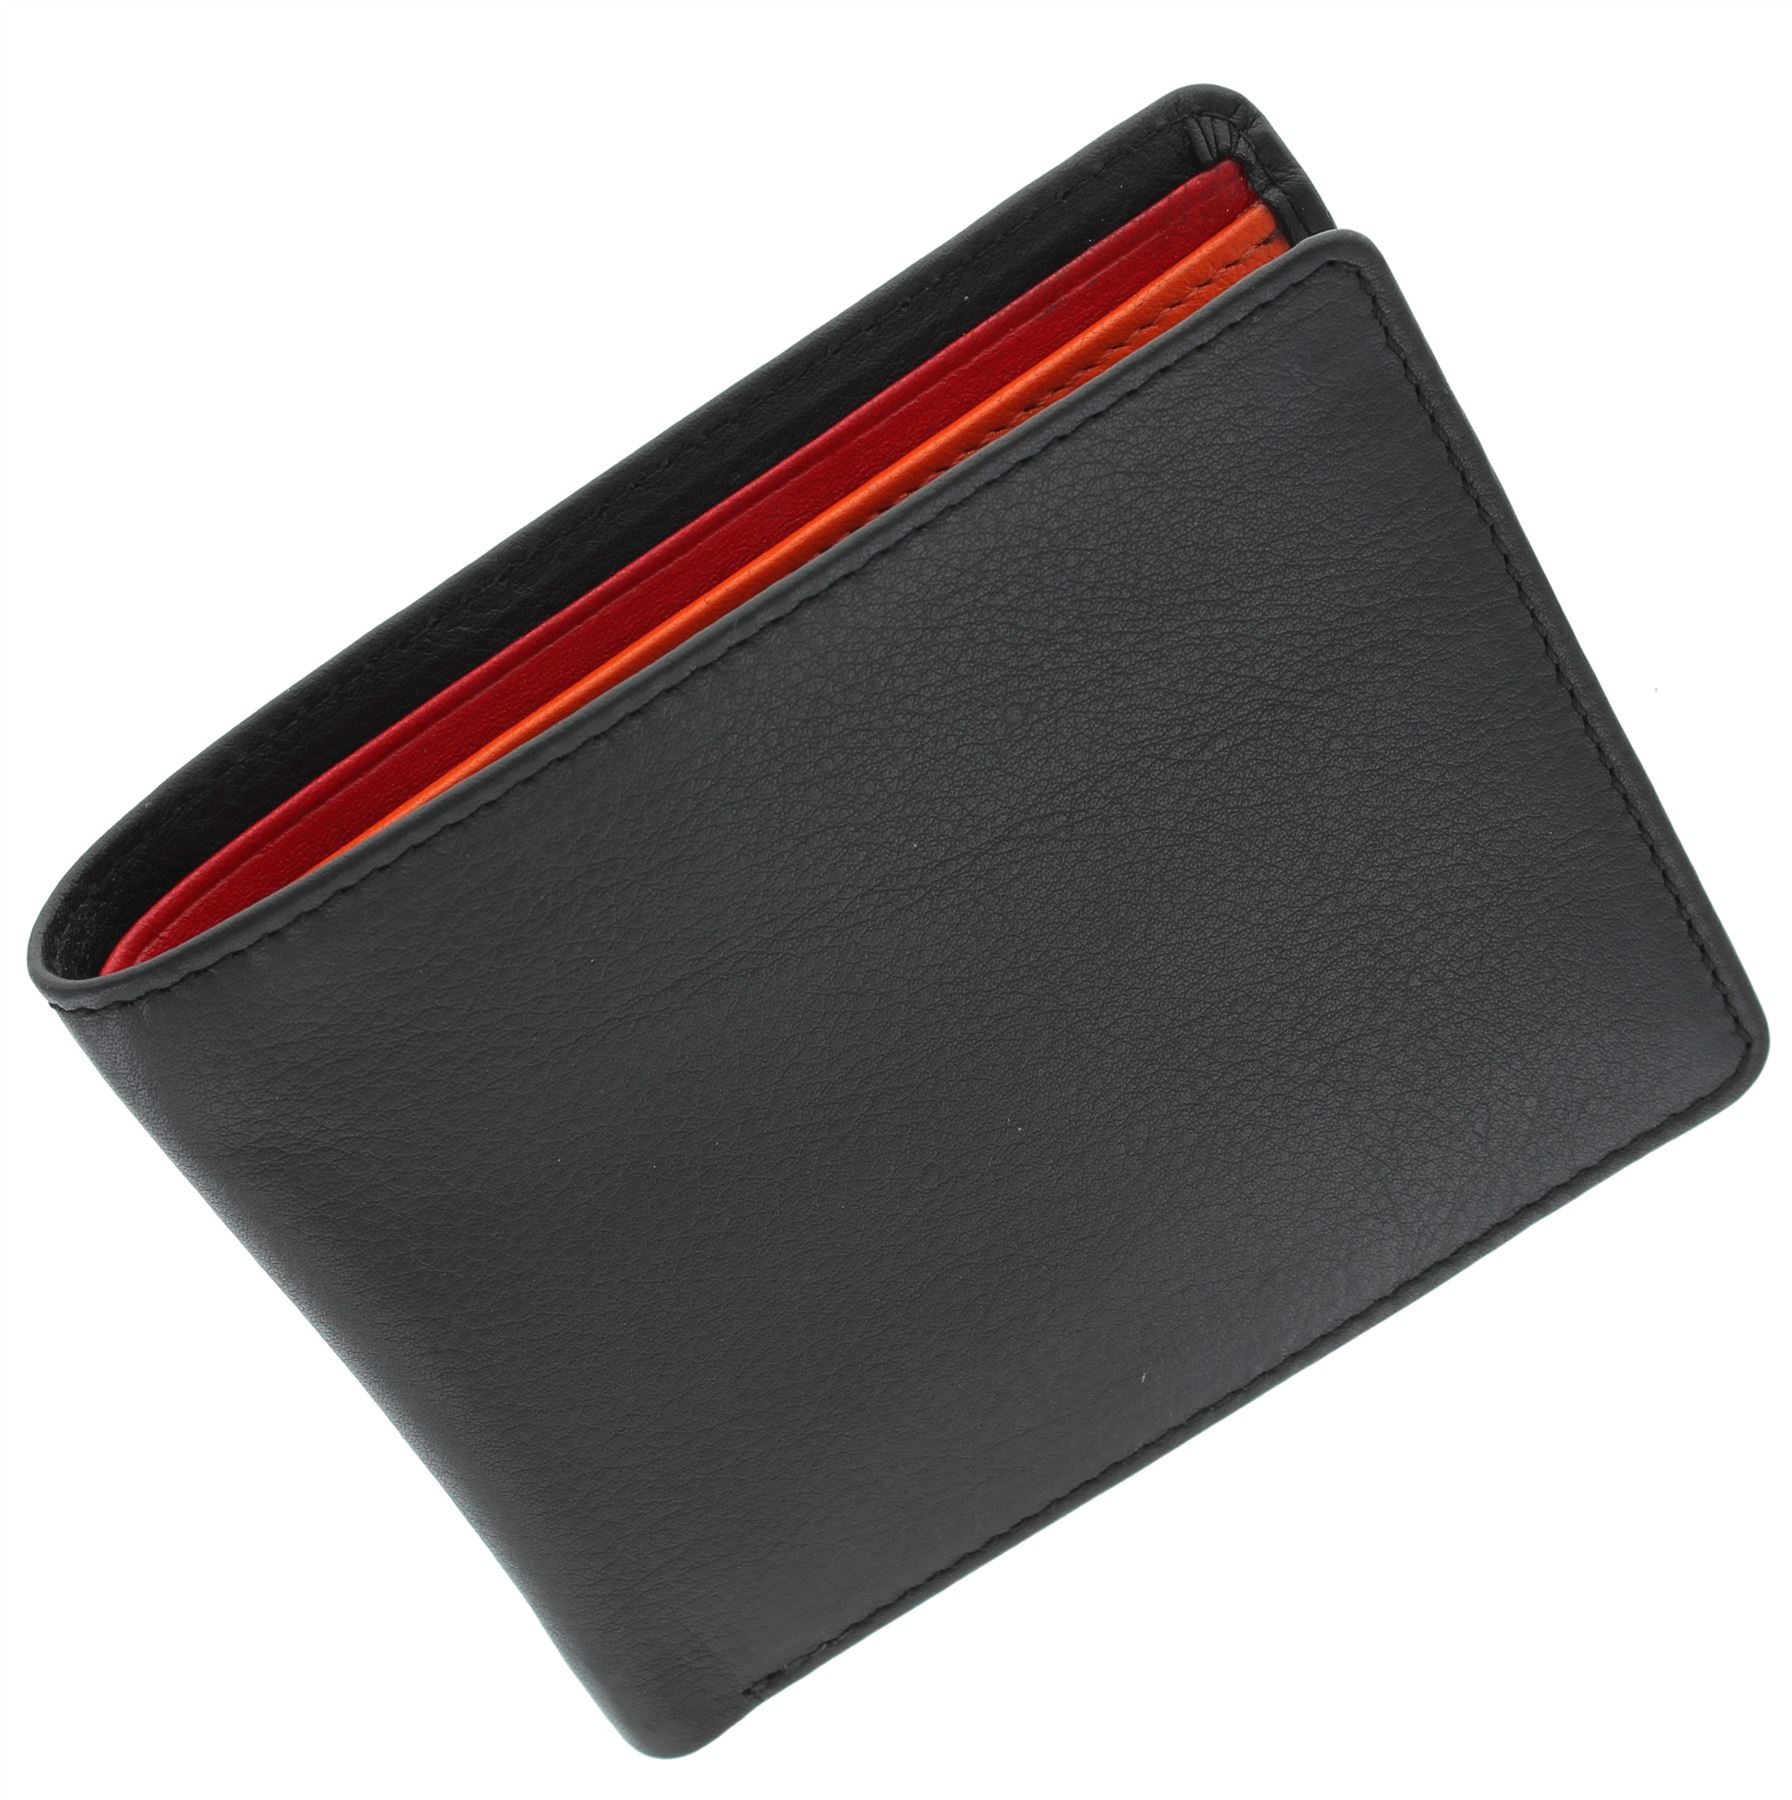 Visconti Gents Leather Bond Collection /'M/' Wallet RFID blocking BD10